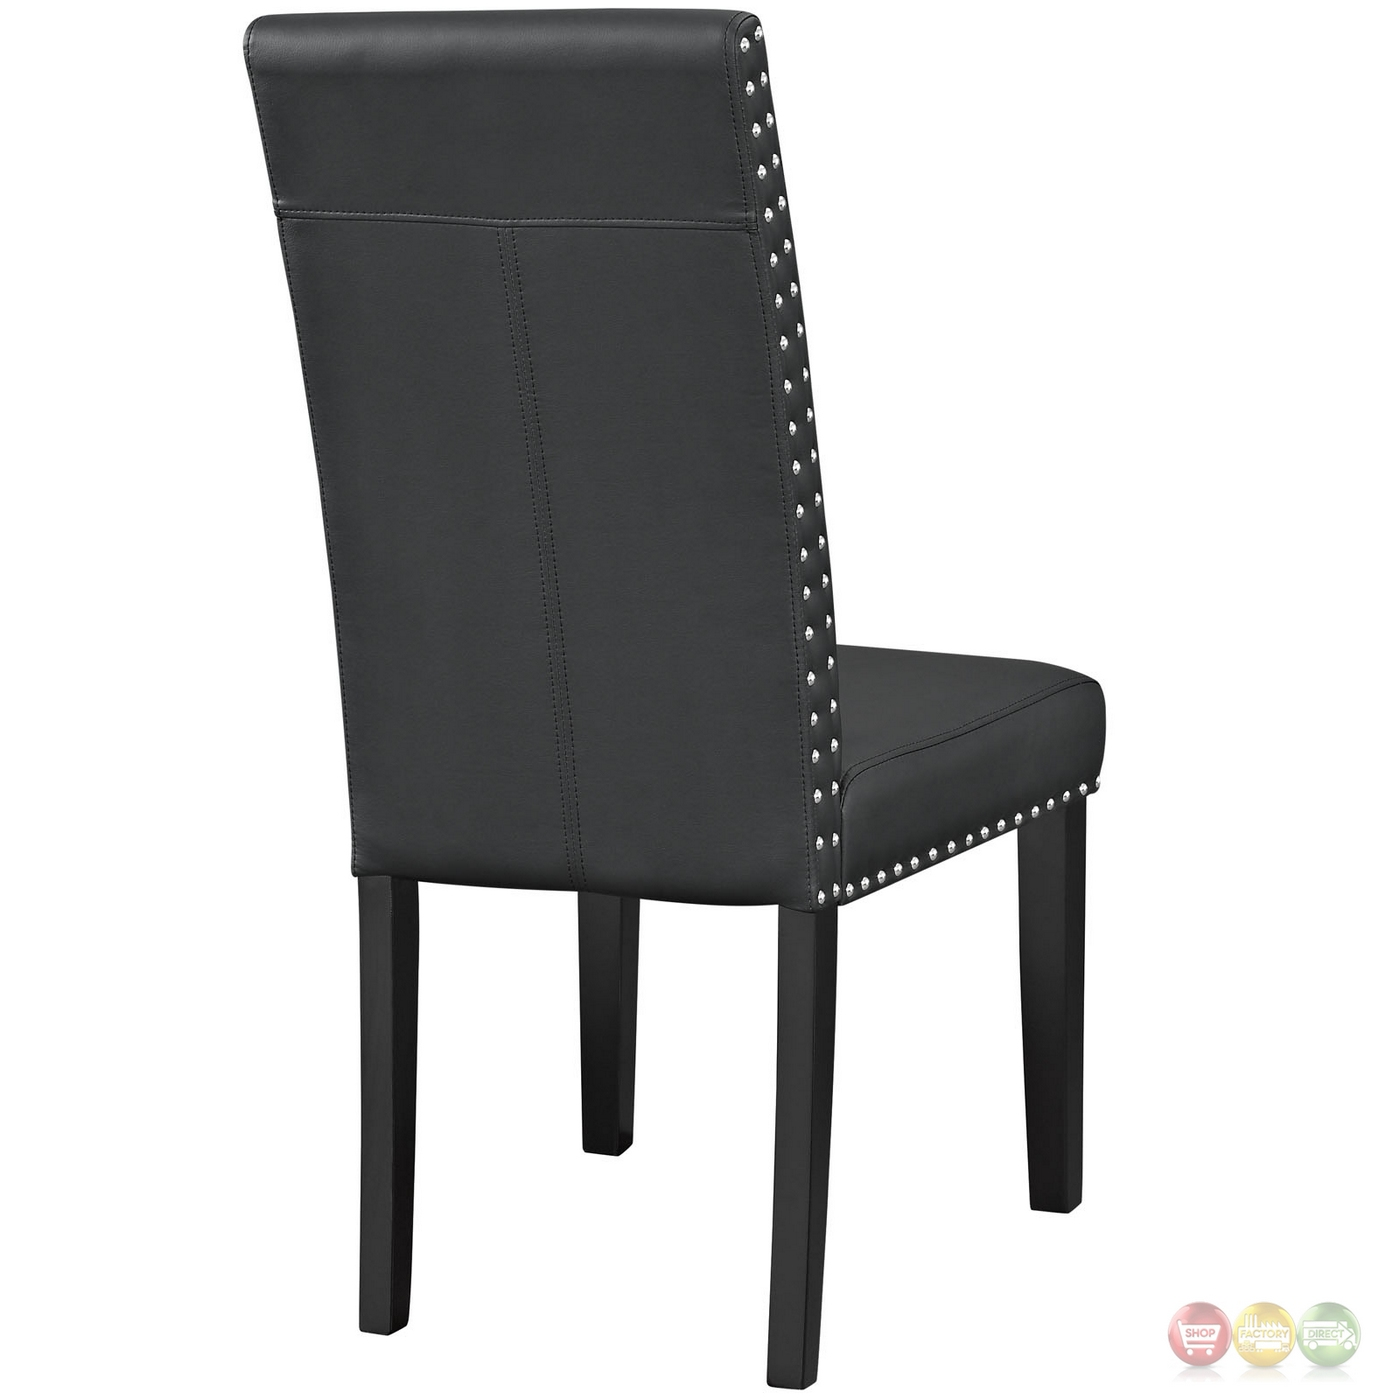 Leather Dining Chairs With Nailheads Parcel Contemporary Faux Leather Dining Side Chair With